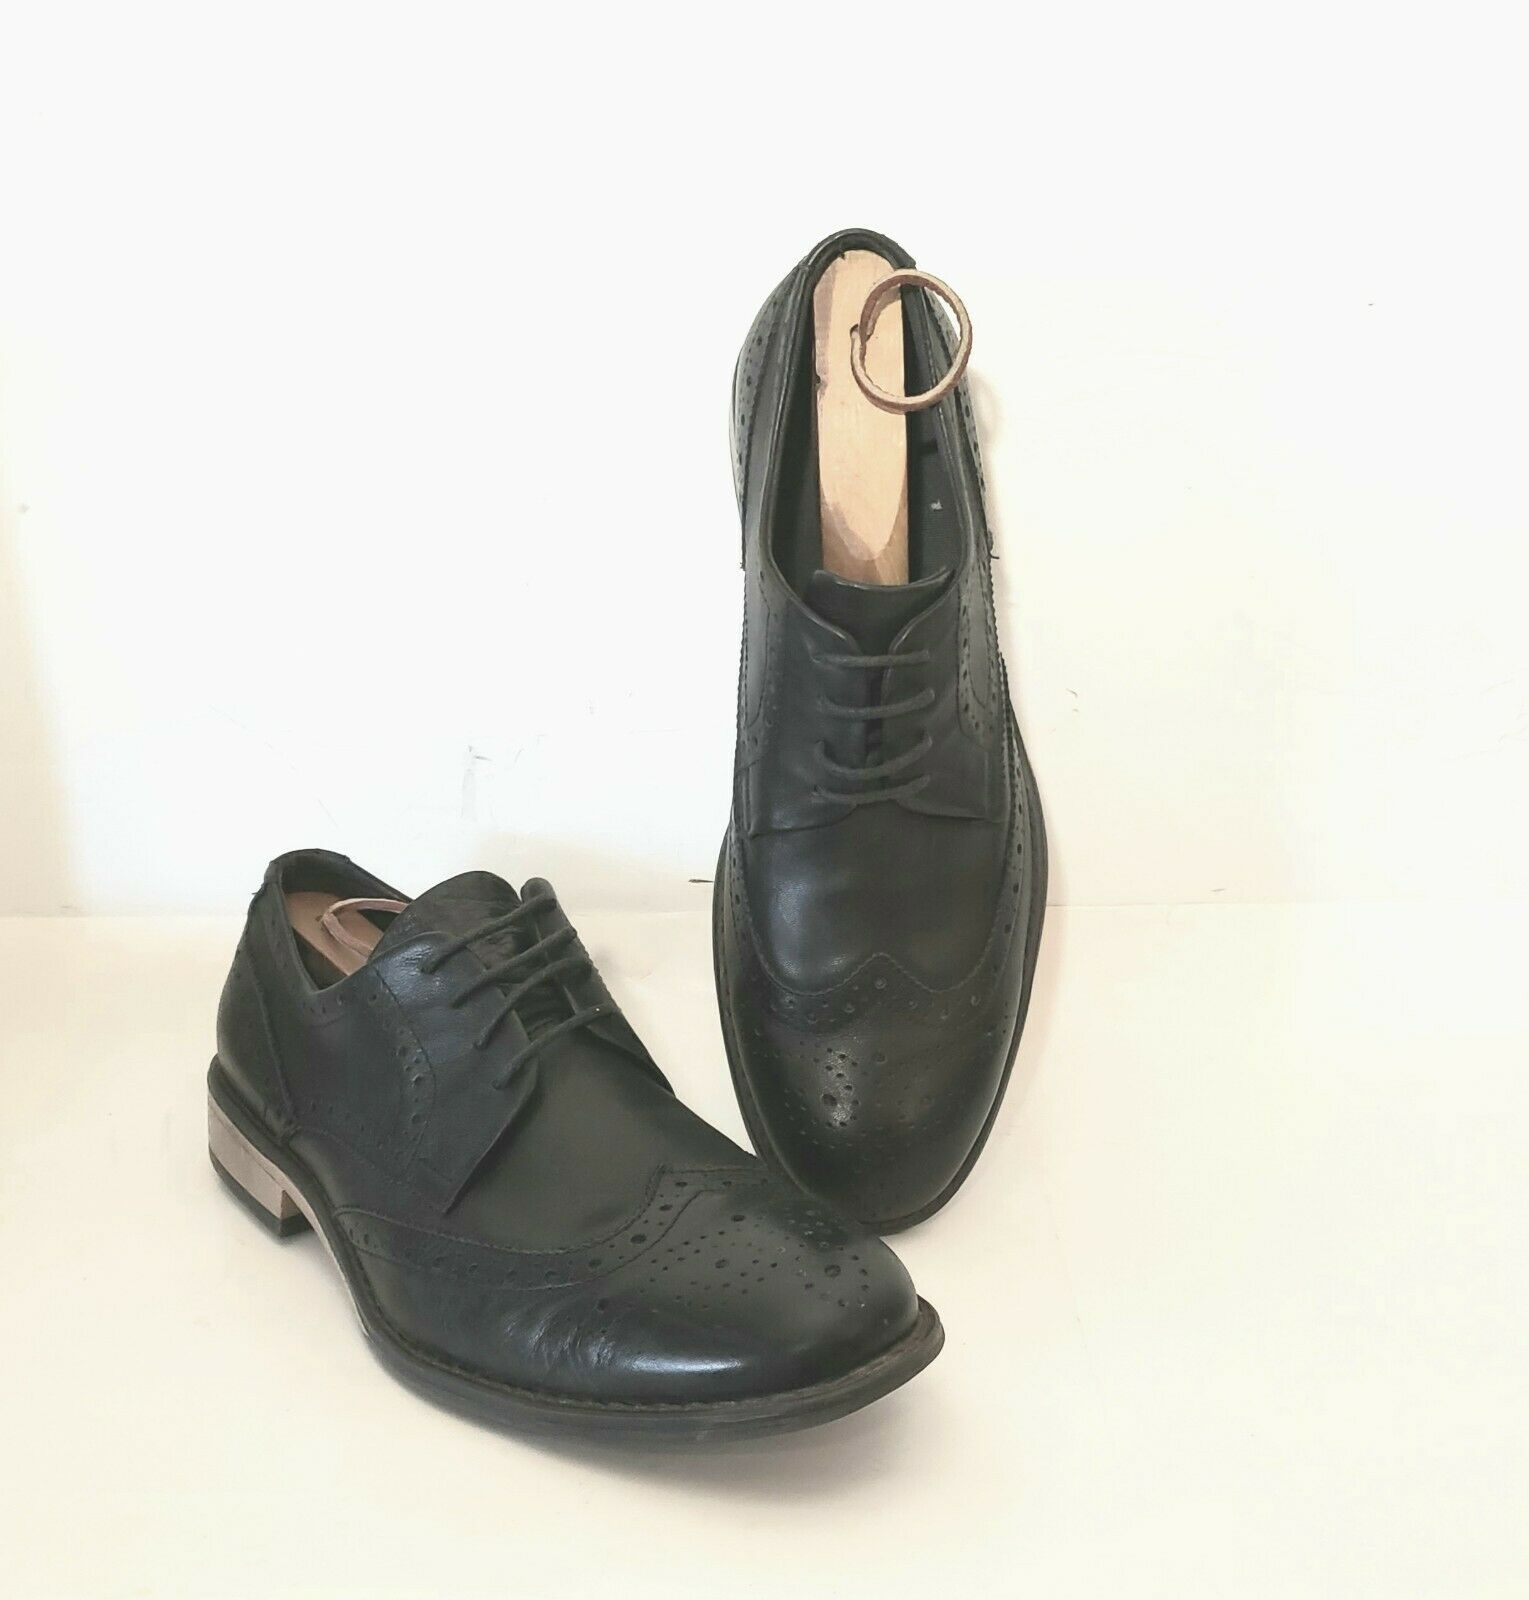 J75 By Jump Malone Oxford Wingtip Men's Shoes Black Leather. Size 9.